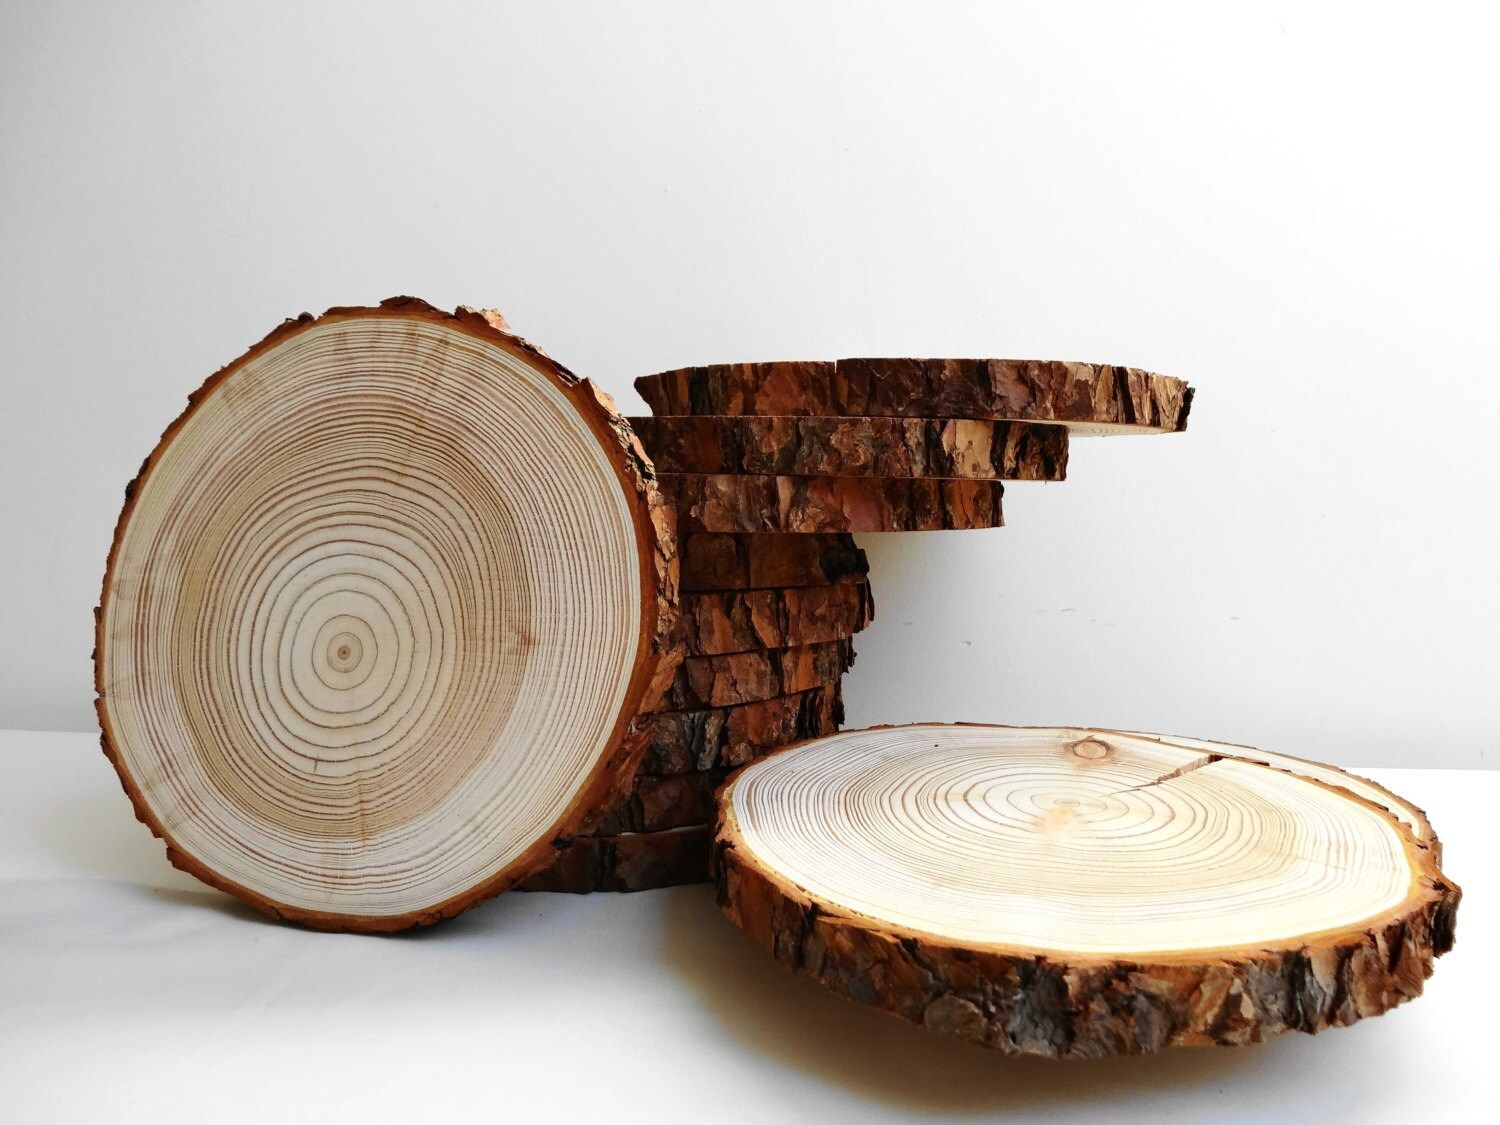 Tree trunk slices gallery of rustic pine tree table tree for Wood trunk slices